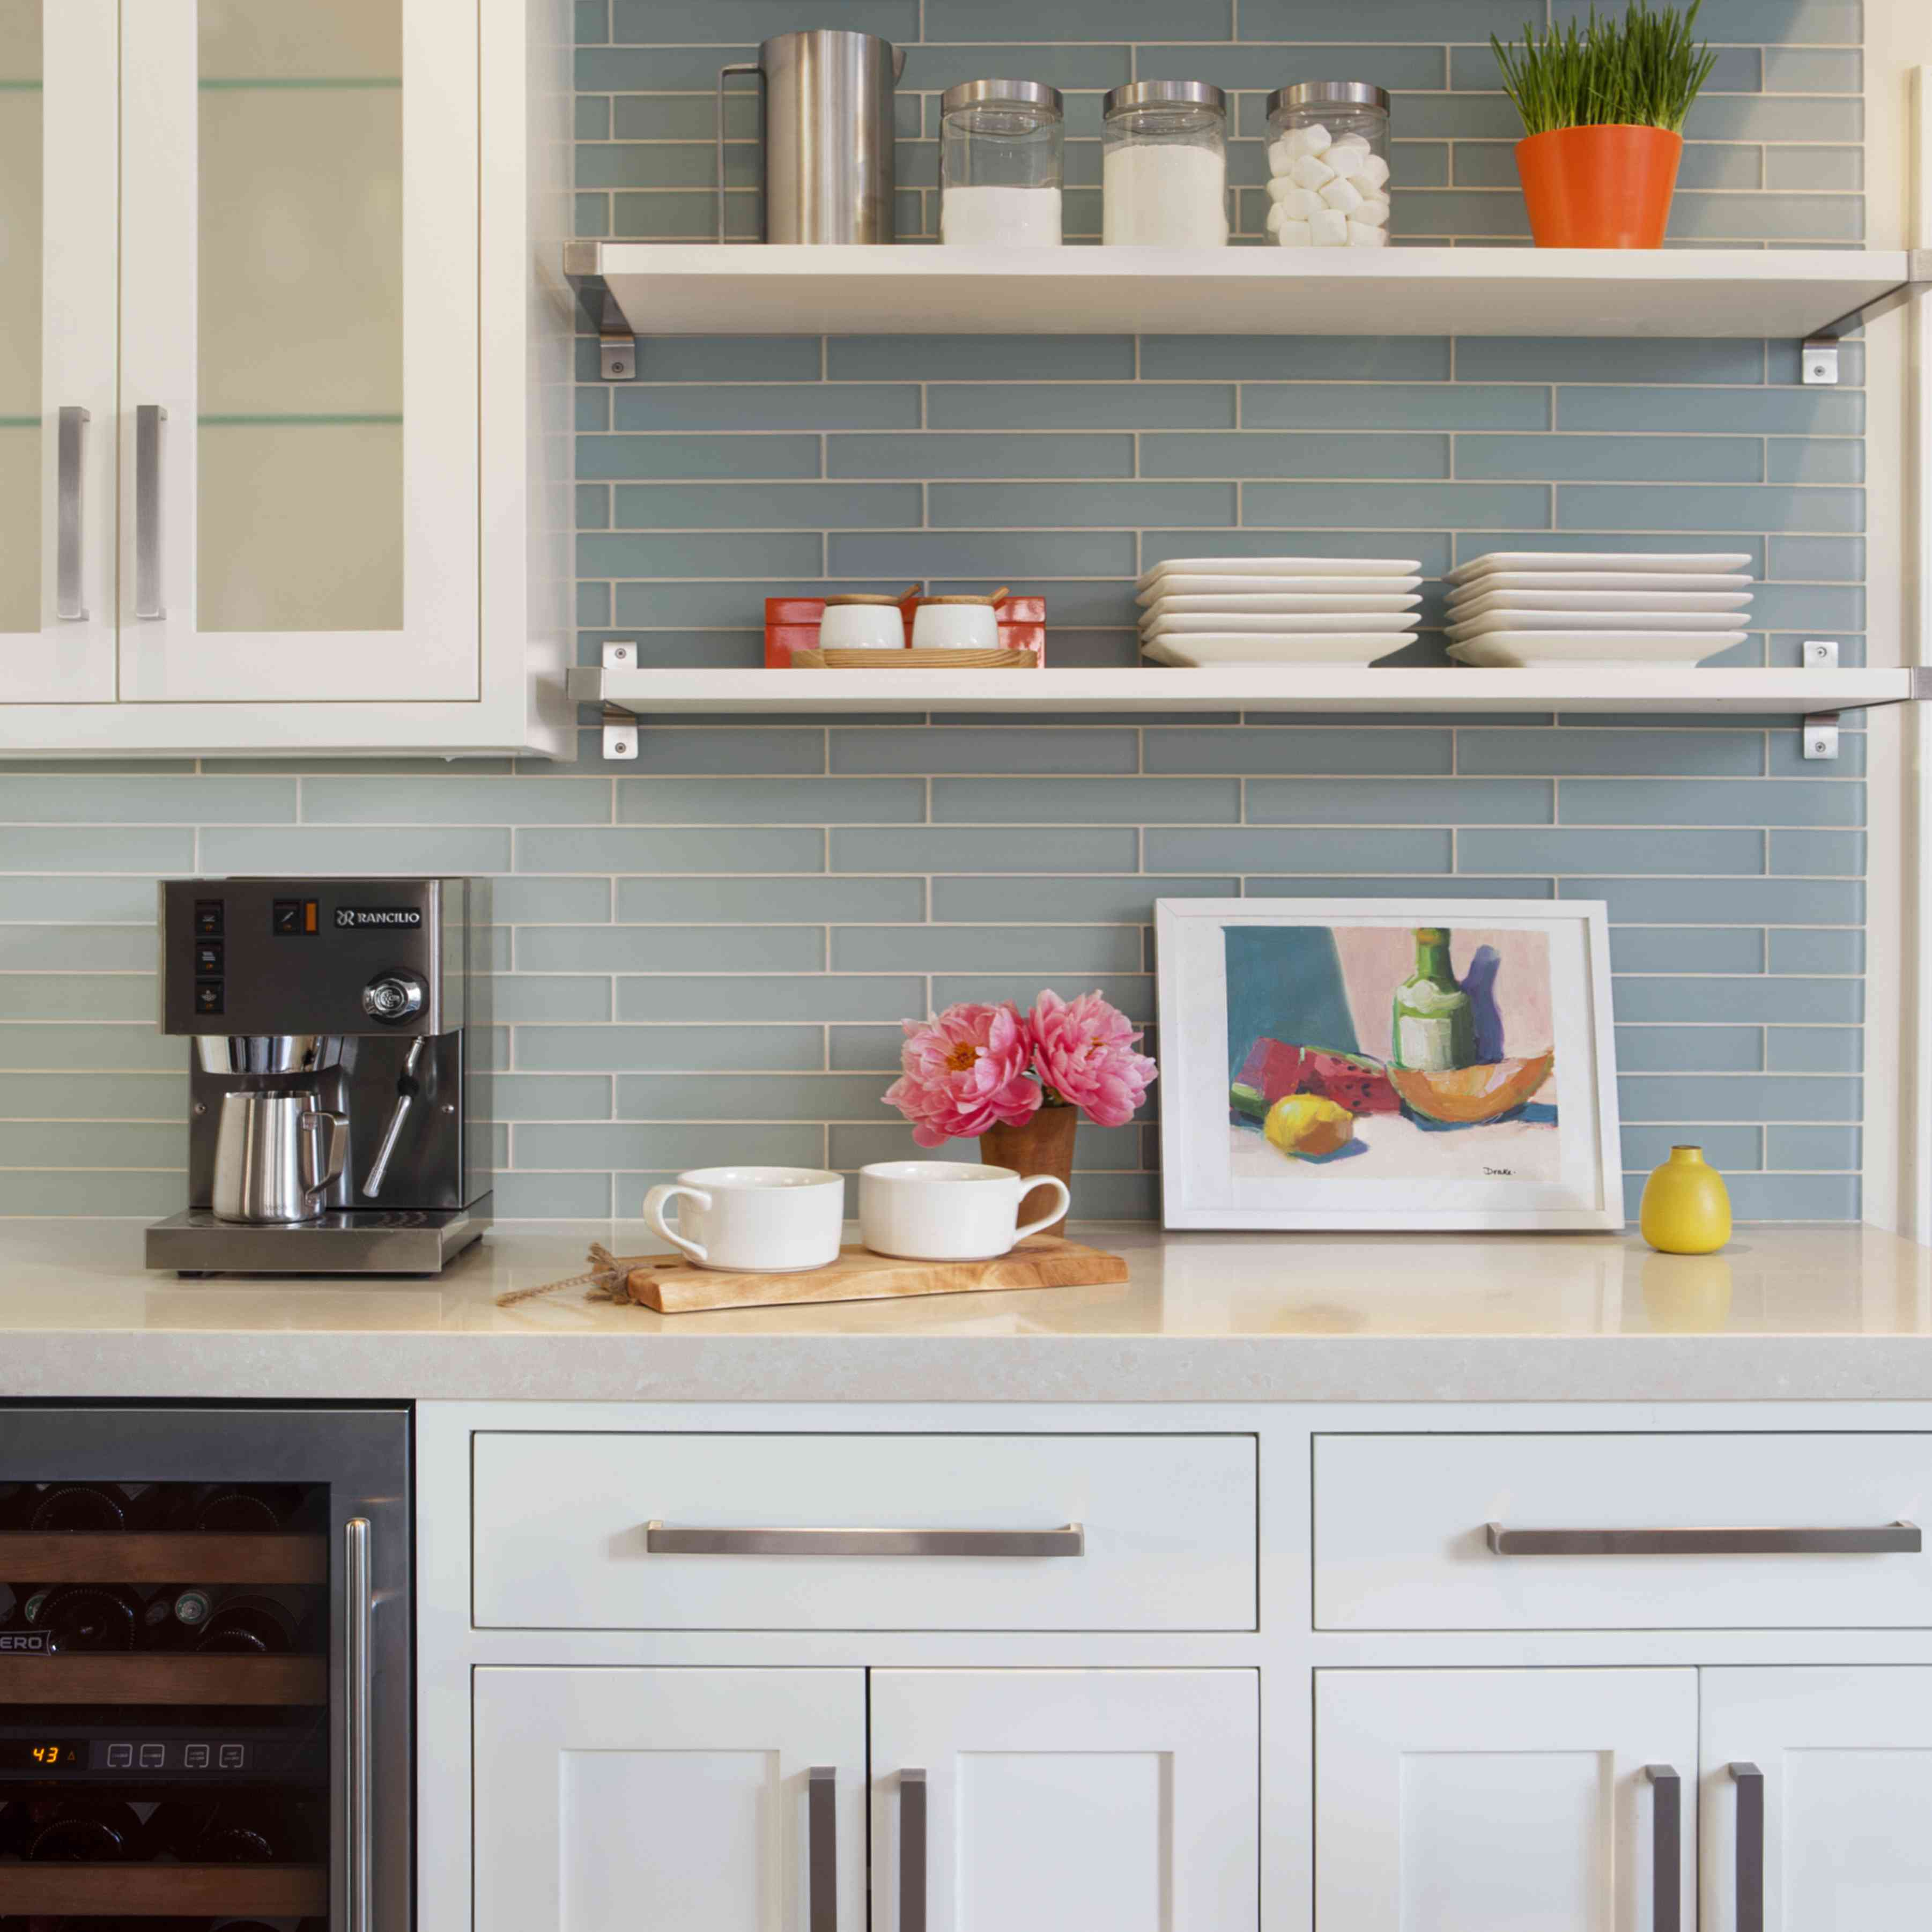 makeover of the week - mansfield + o'neil kitchen makeover after with blue subway tile